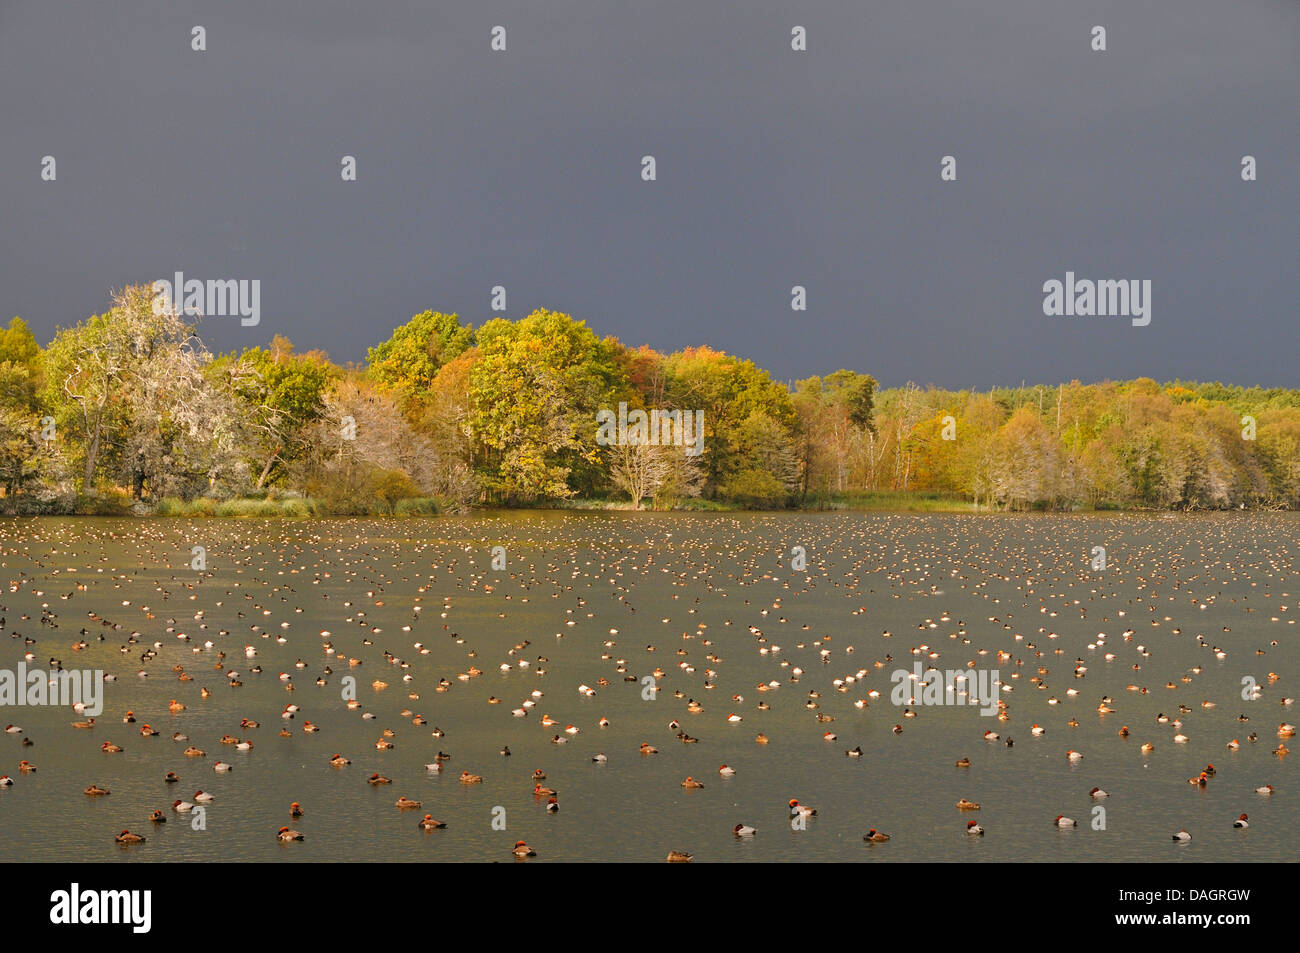 screamers and waterfowl (ducks/geese/swans) (Anseriformes), resting common pochards, red-crested pochards and tufted - Stock Image